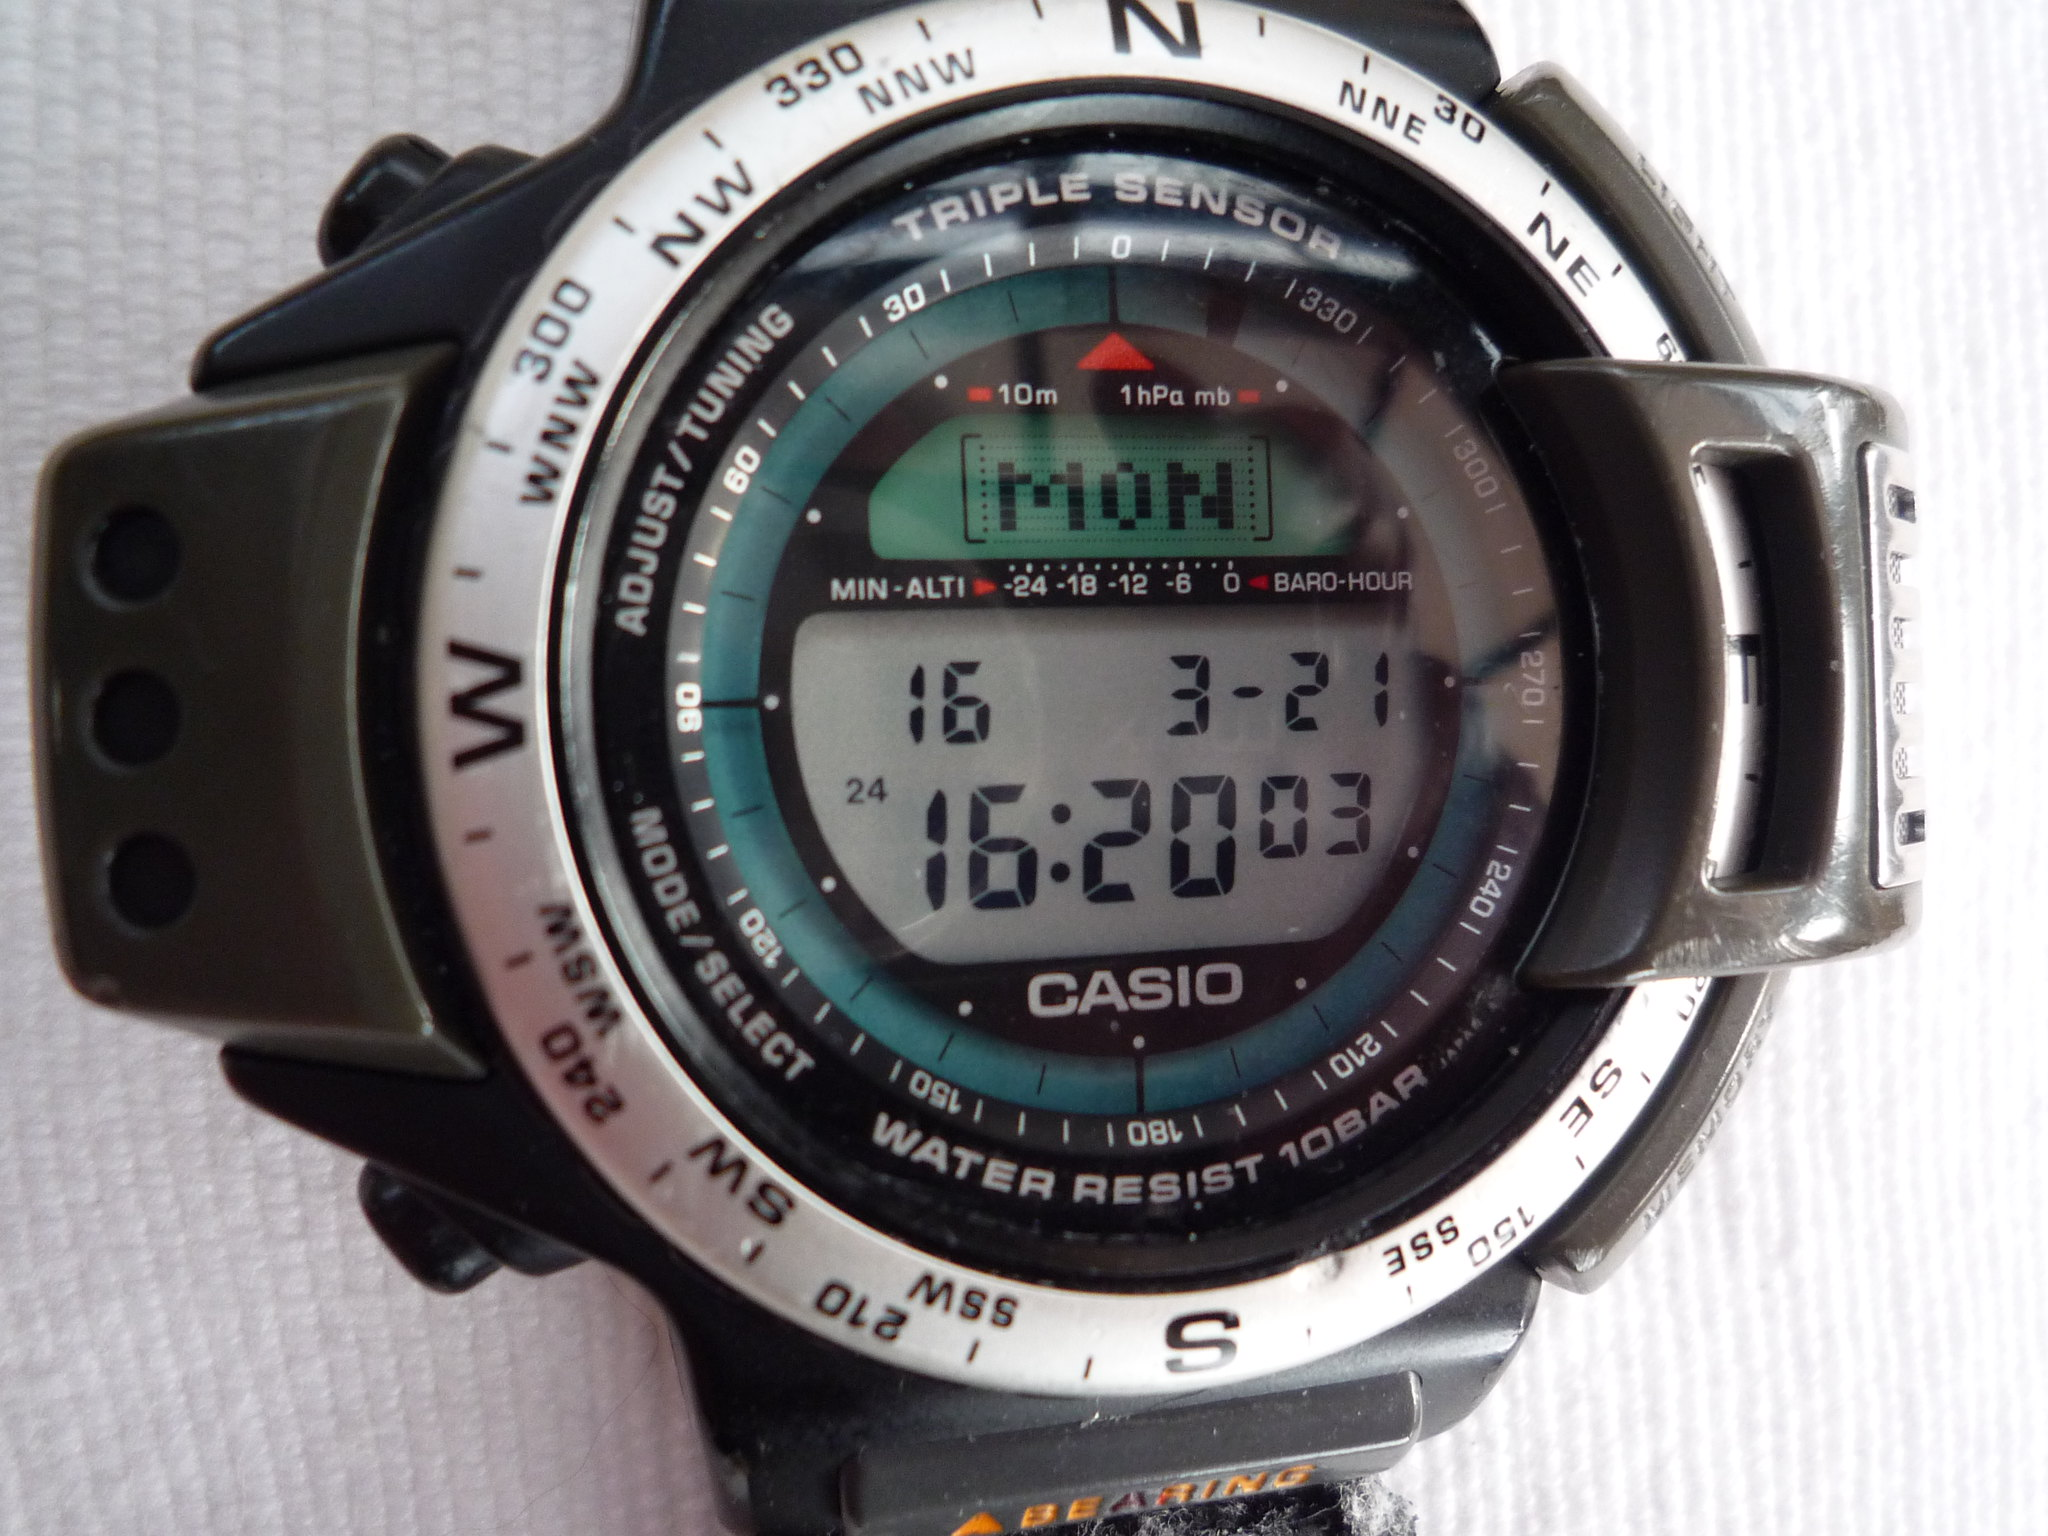 are watches to don watch them the as this example with k first not real atc it use these mind good wabi used a intended protrek on is plenty t i of very abc review well and collectibles